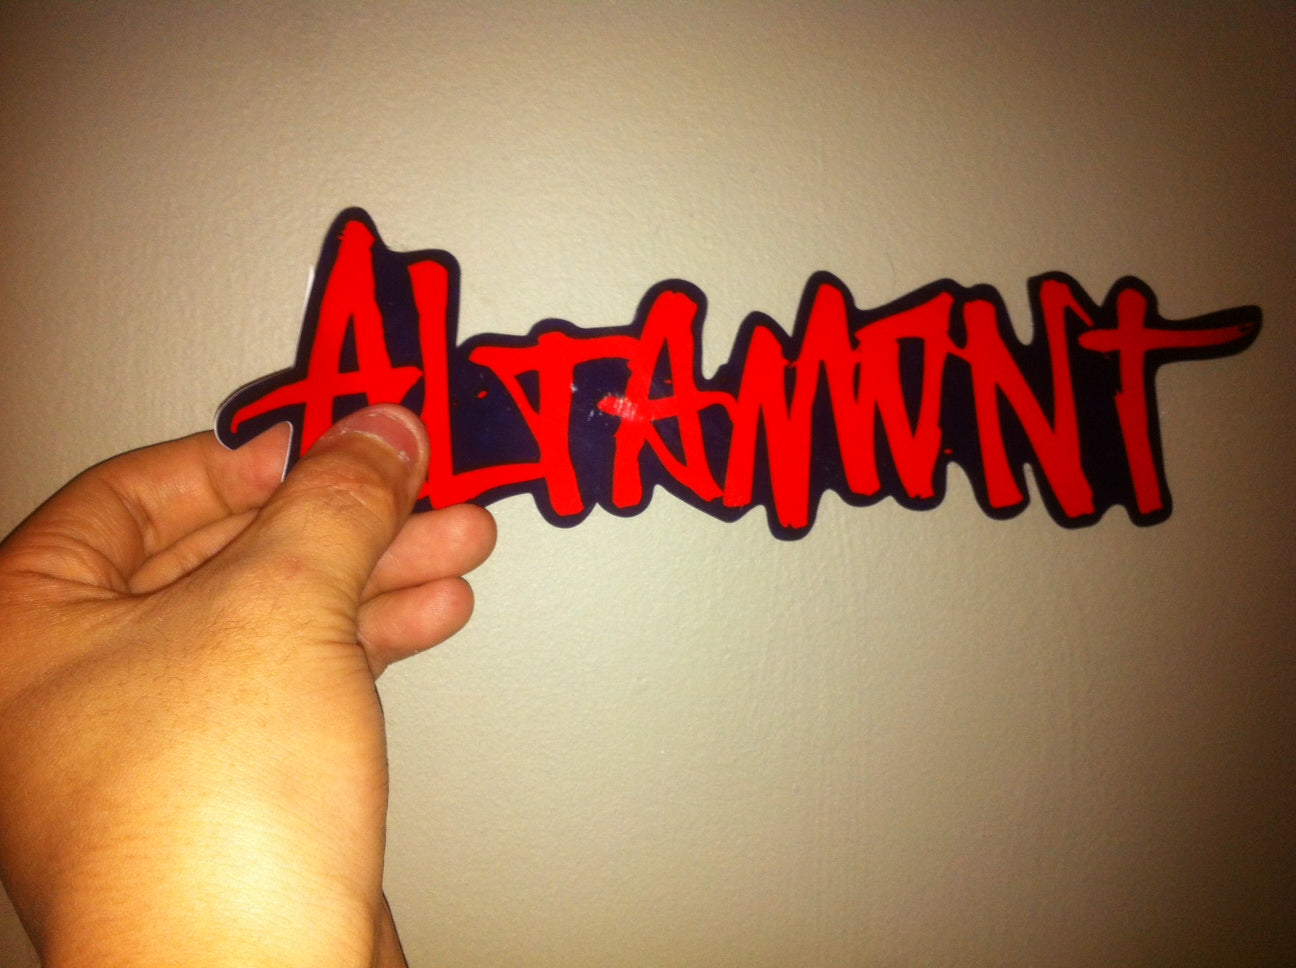 Die Cut, Vinyl Water proof stickers made for Altamont.